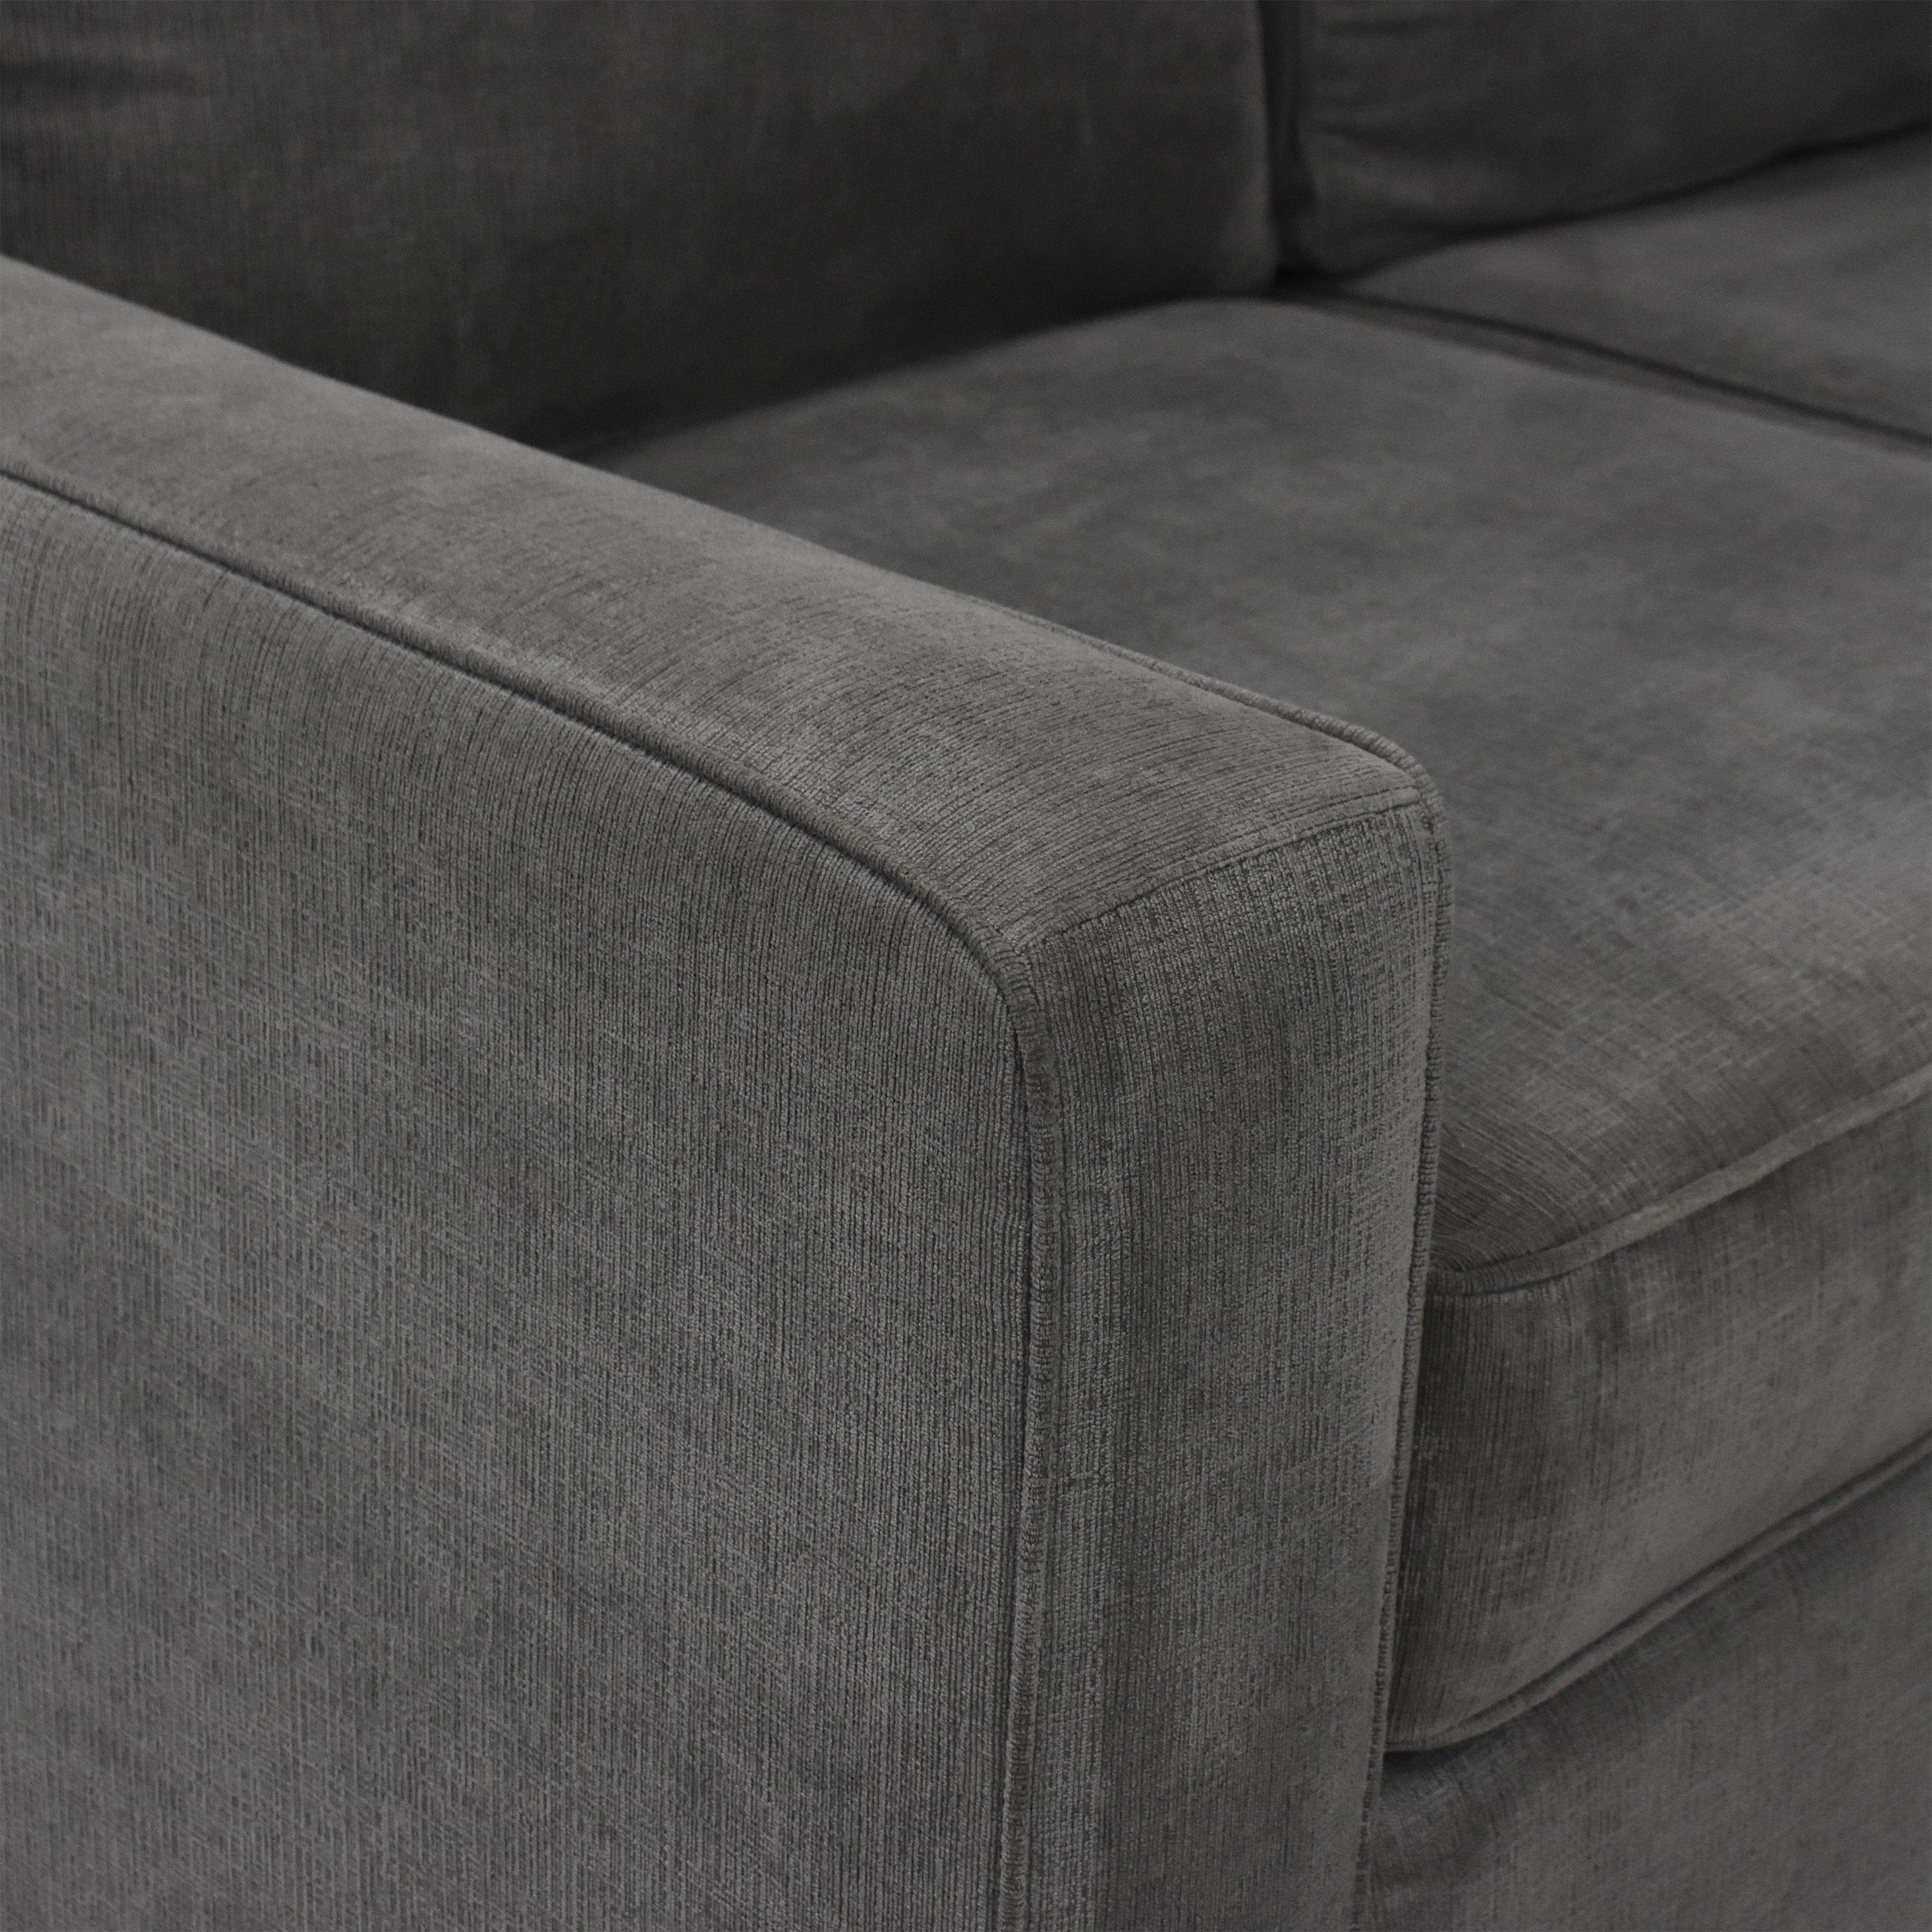 Macy's Macy's Radley Sectional Sofa with Chaise price